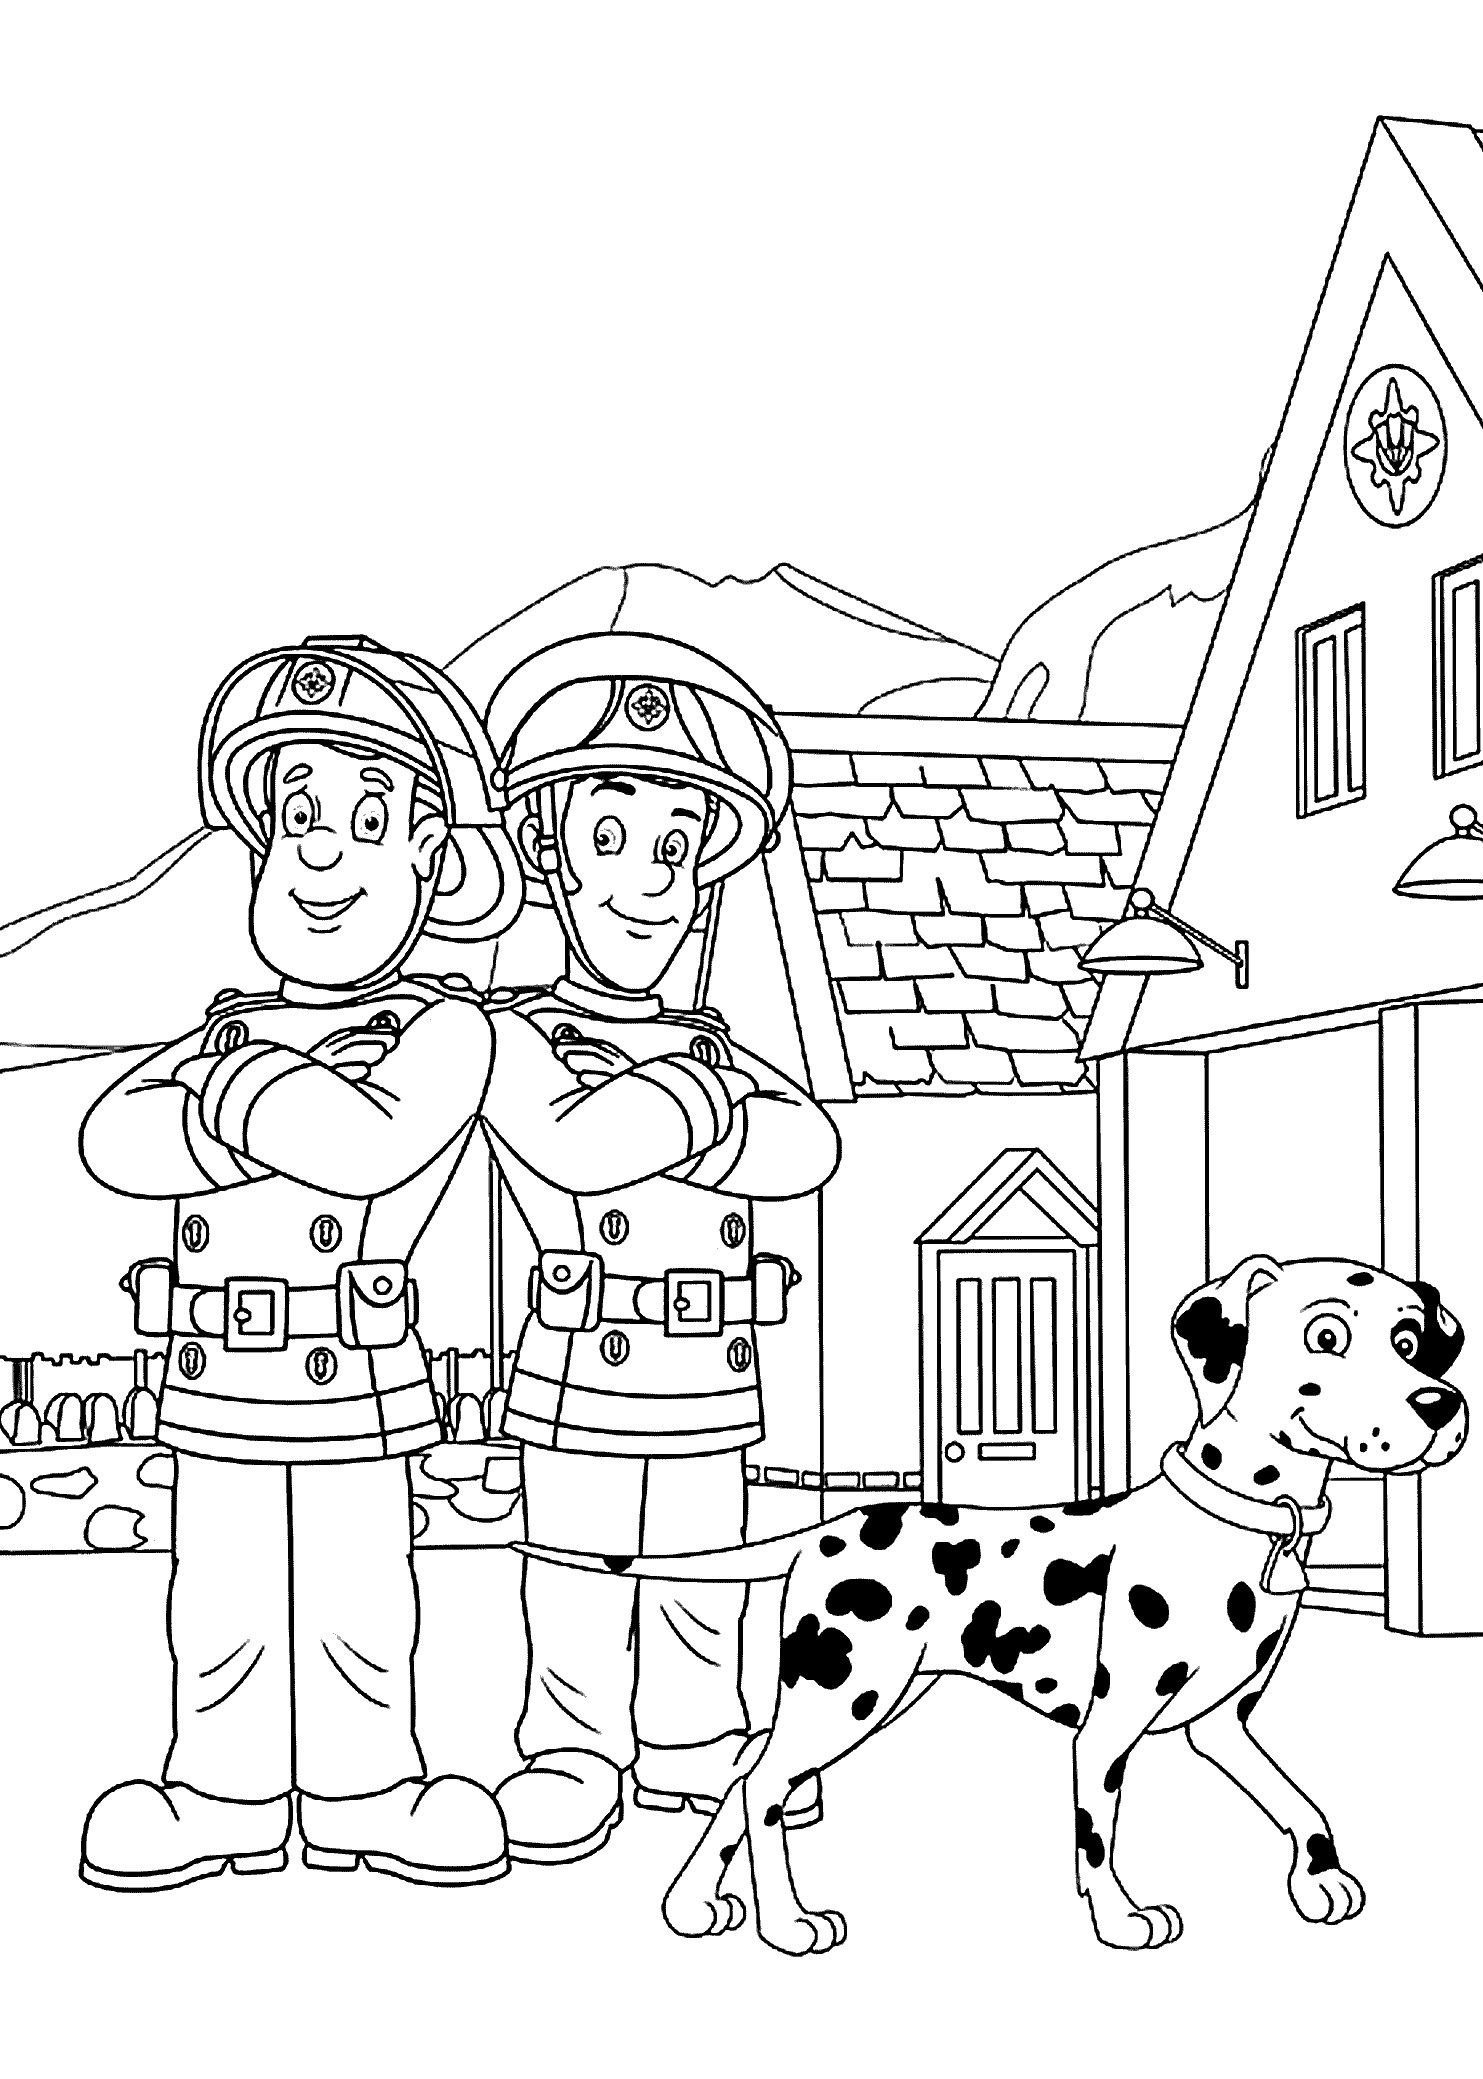 Fireman Sam coloring pages on Coloring-Book.info | 2079x1483